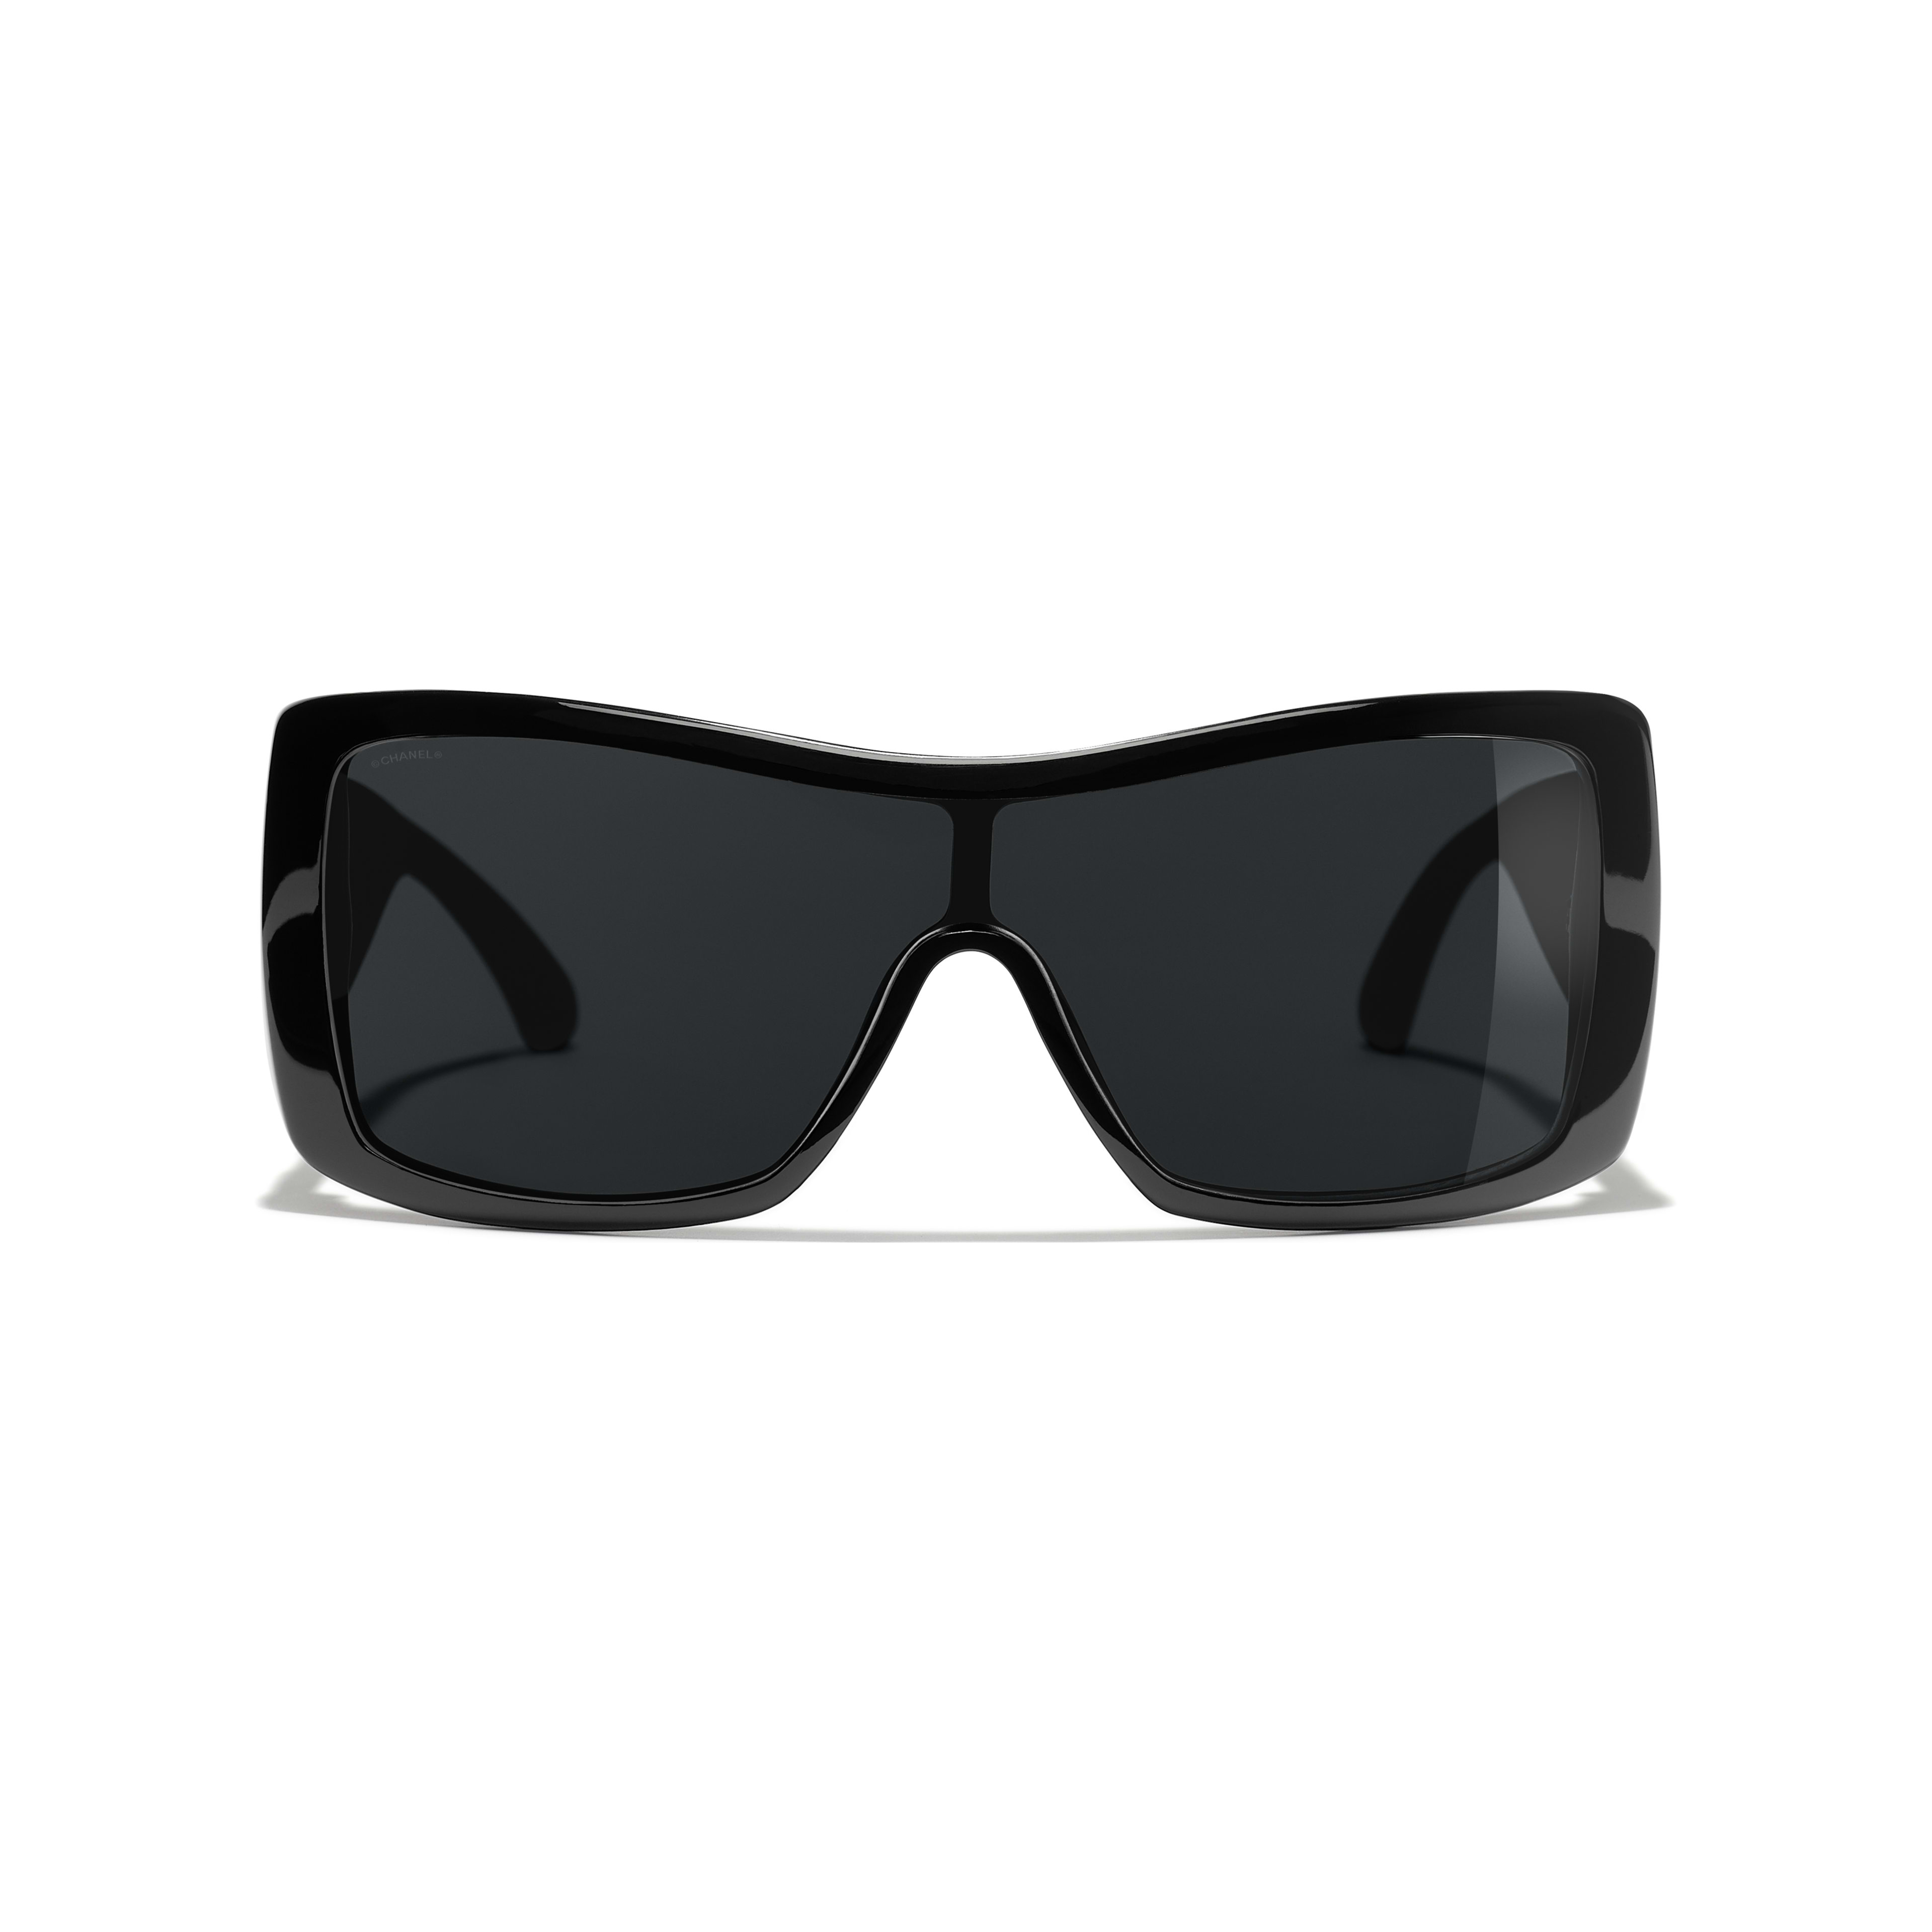 Shield Sunglasses - Black - Acetate, Wood & Rubber - Alternative view - see full sized version